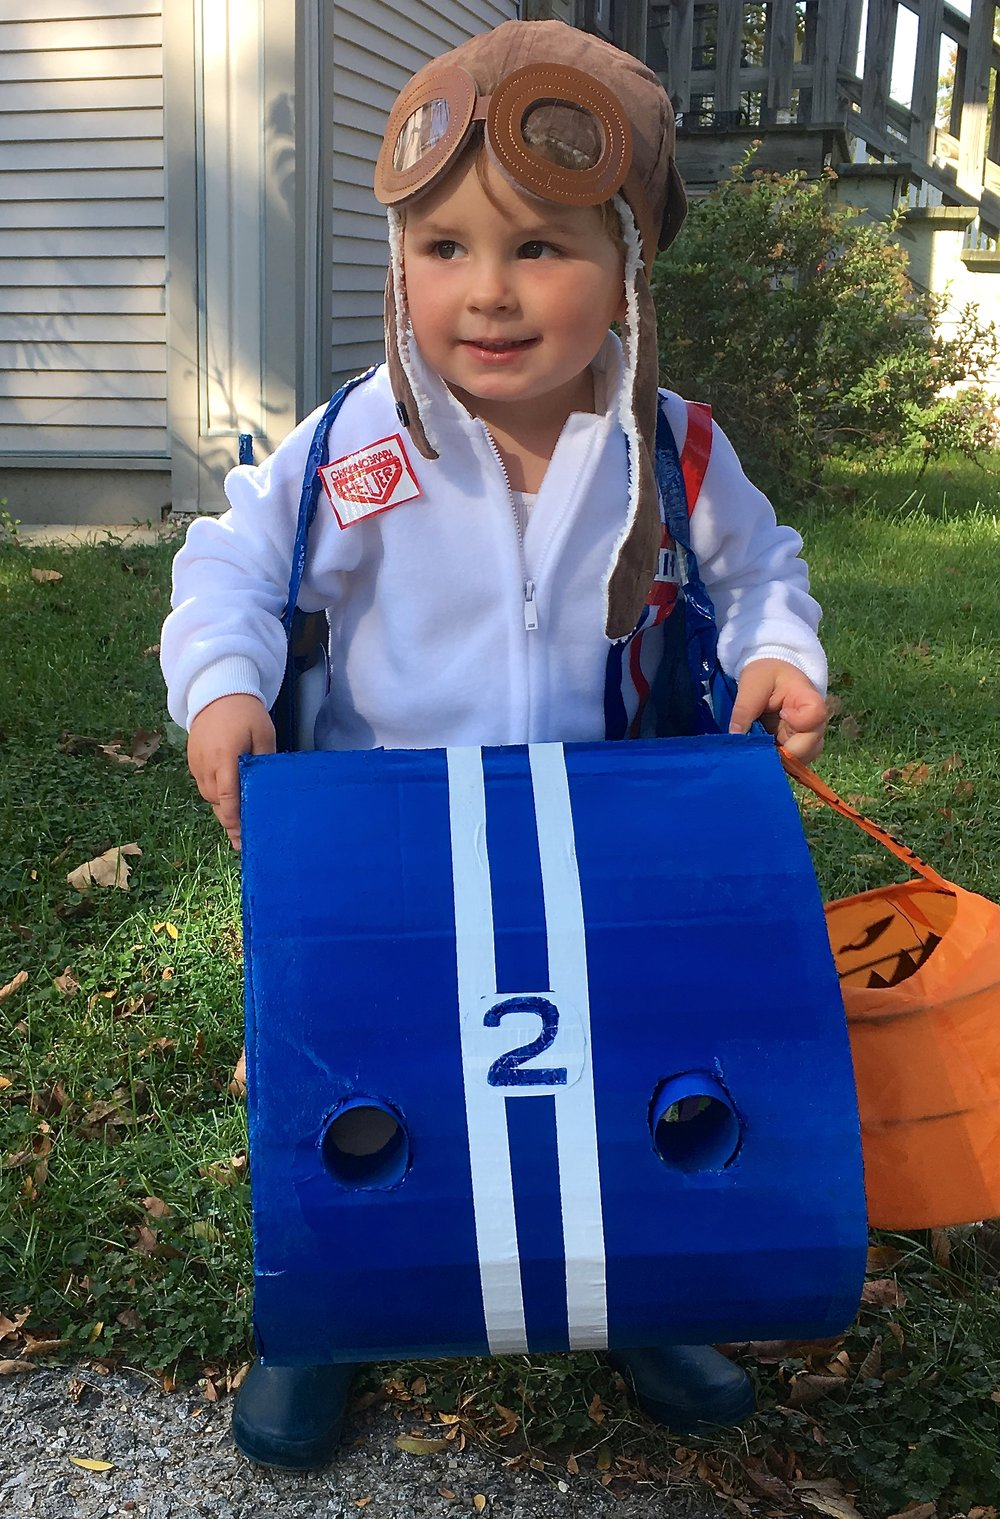 This year without question Max wanted to be a race car driver. The kid lives and breaths cars. He regularly wanders over to me clutching a fistful of ...  sc 1 st  Homemakeru0027s Habitat & DIY Halloween Costume: Vintage Race Car Driver u2022 Homemakeru0027s Habitat